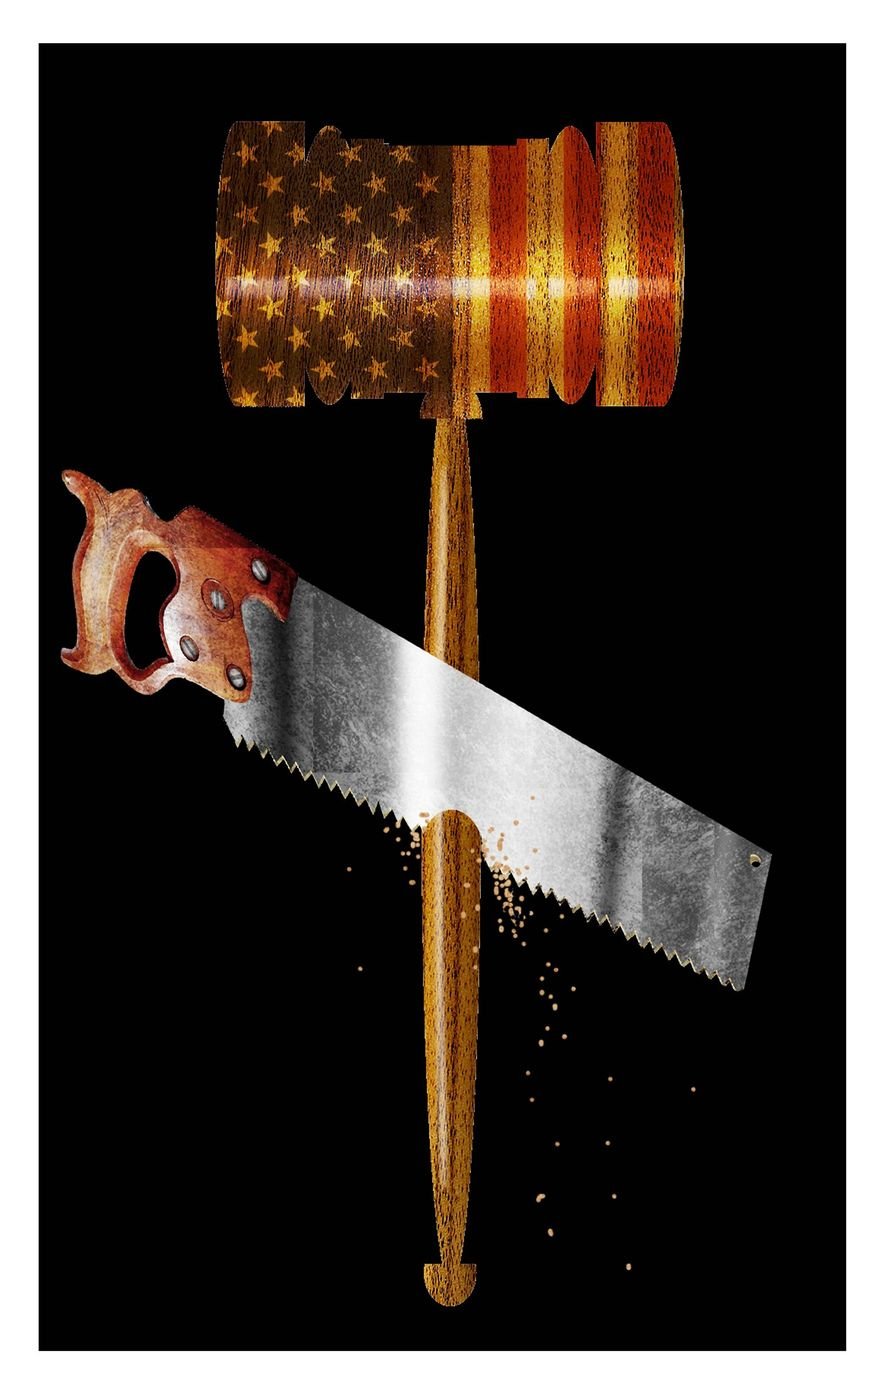 Illustration on undermining the rule of law by Alexander Hunter/The Washington Times